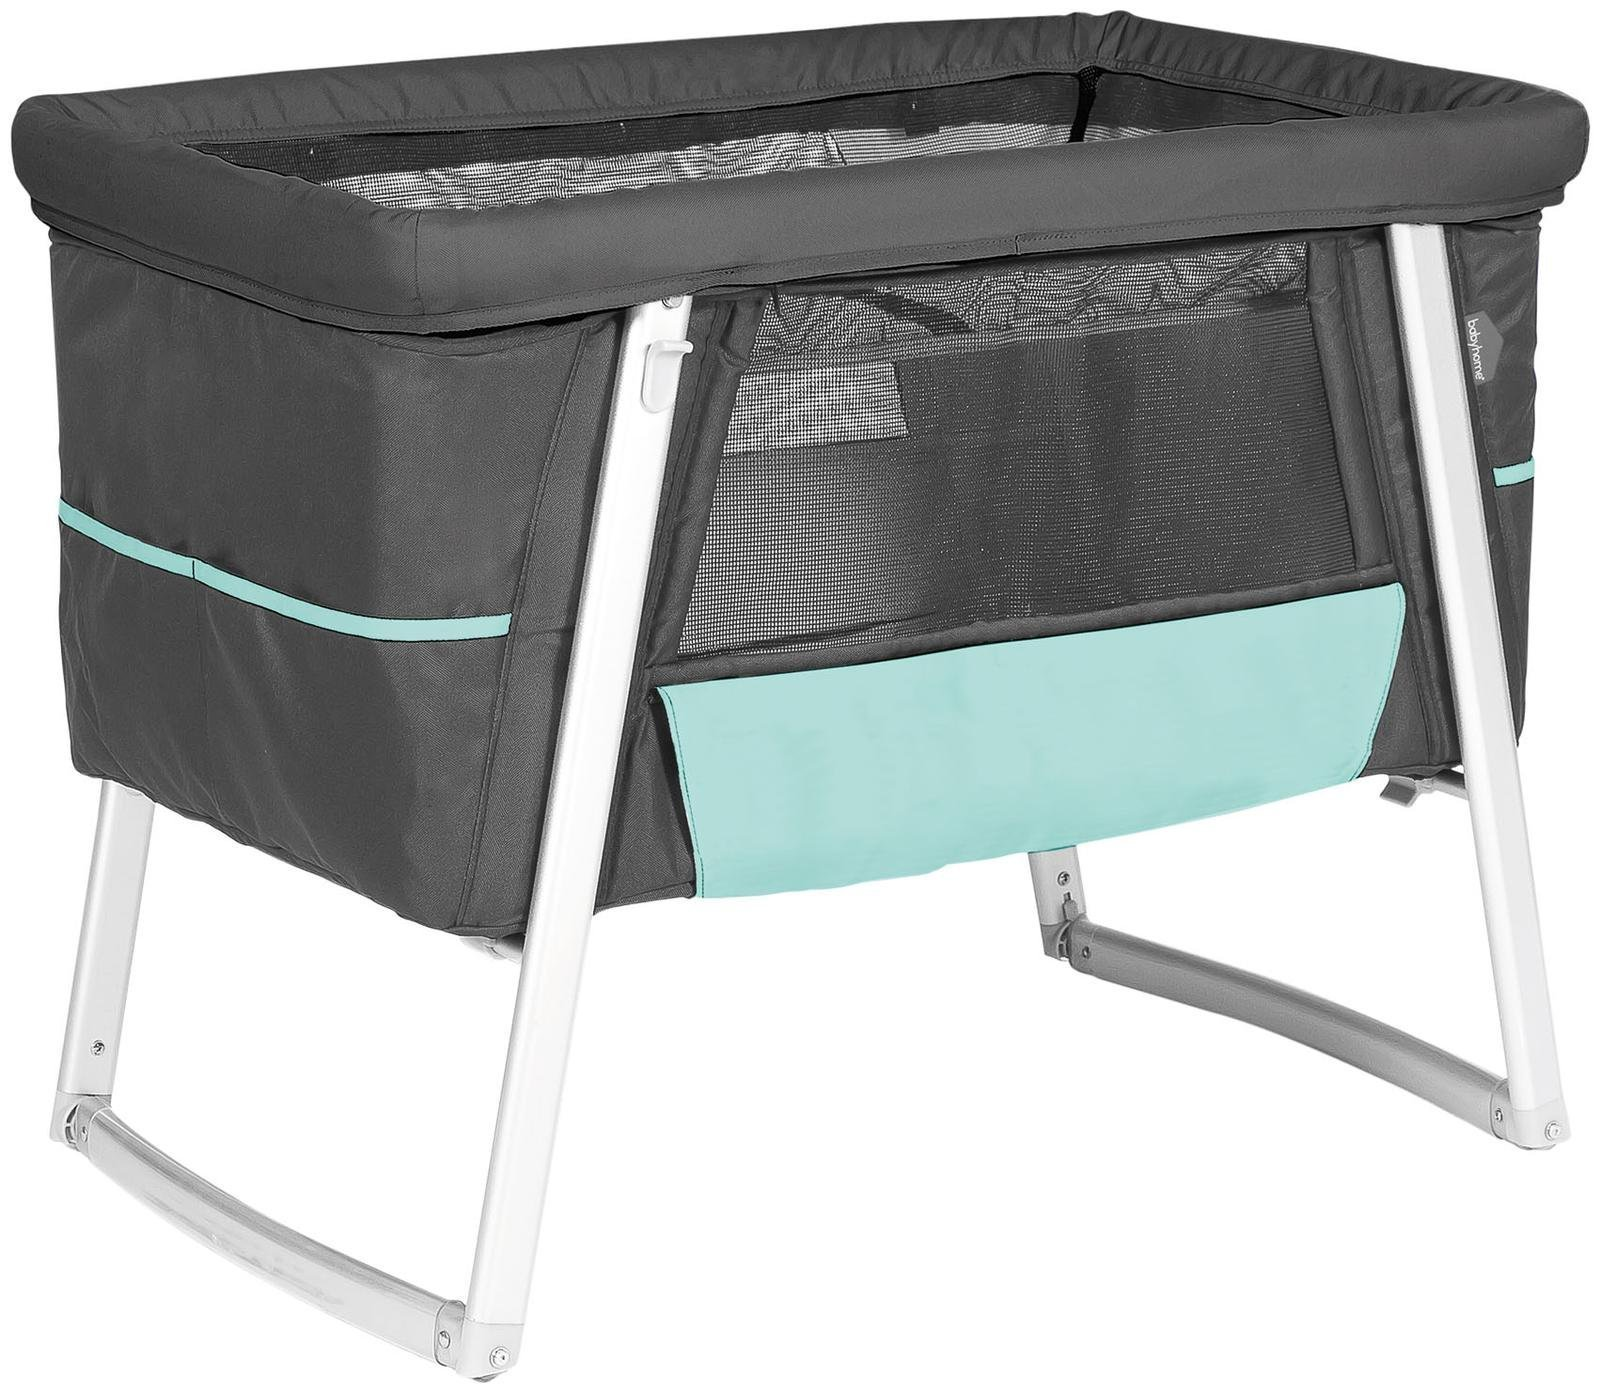 BabyHome Air Bassinet - Graphite by Babyhome